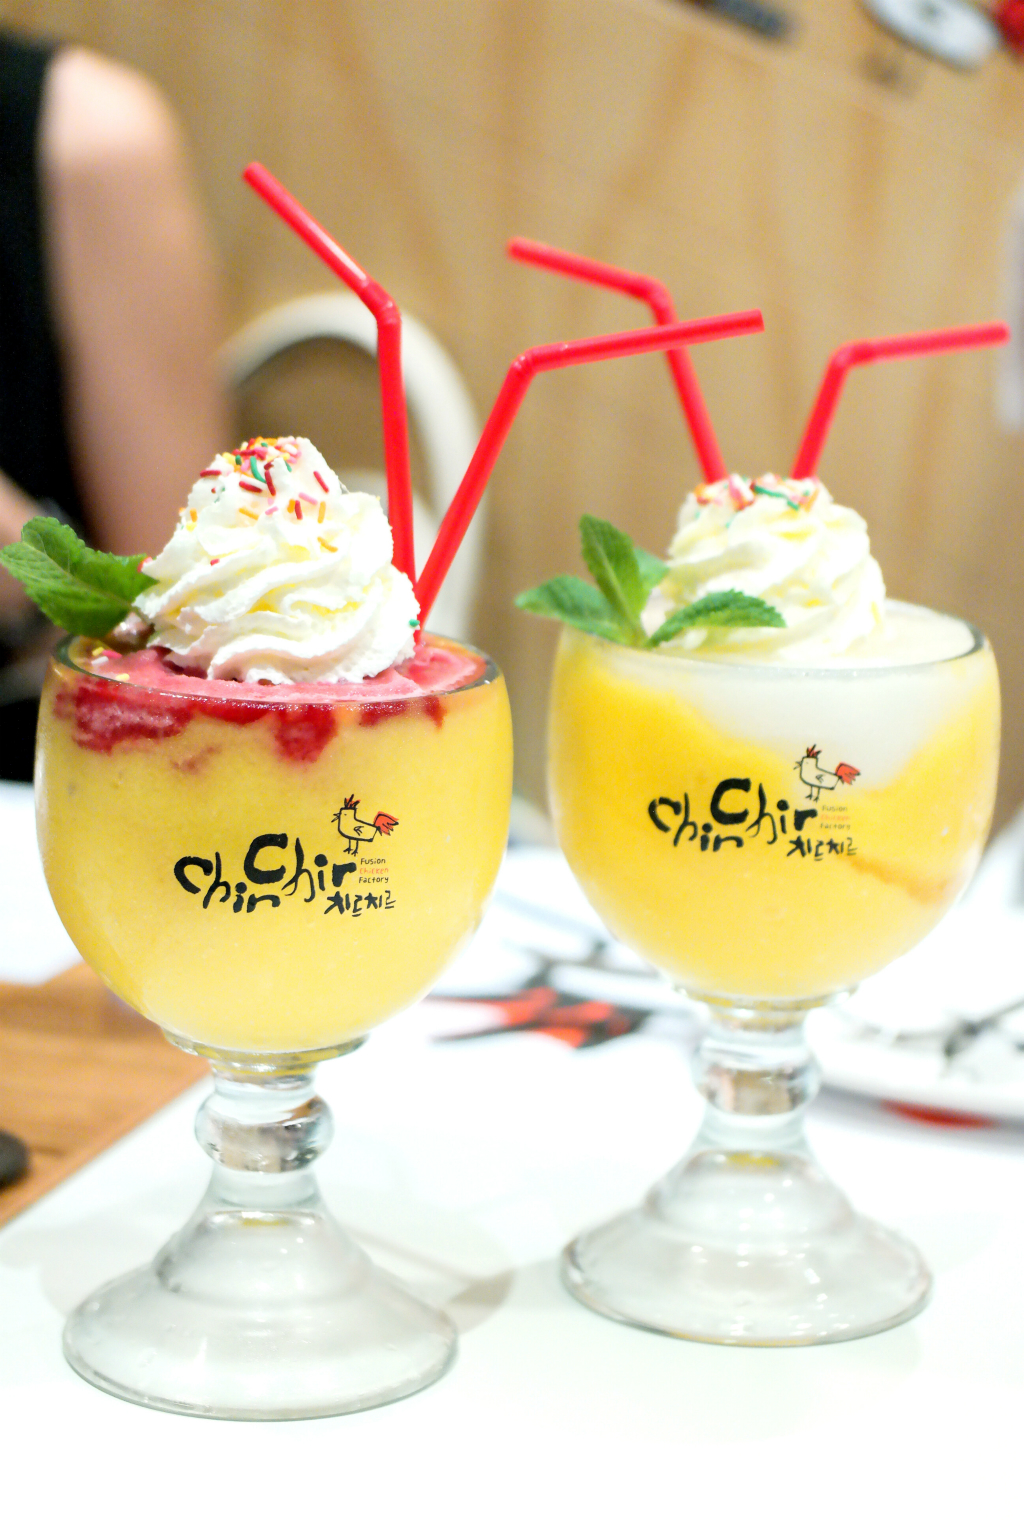 Chir Chir: Double Smoothies